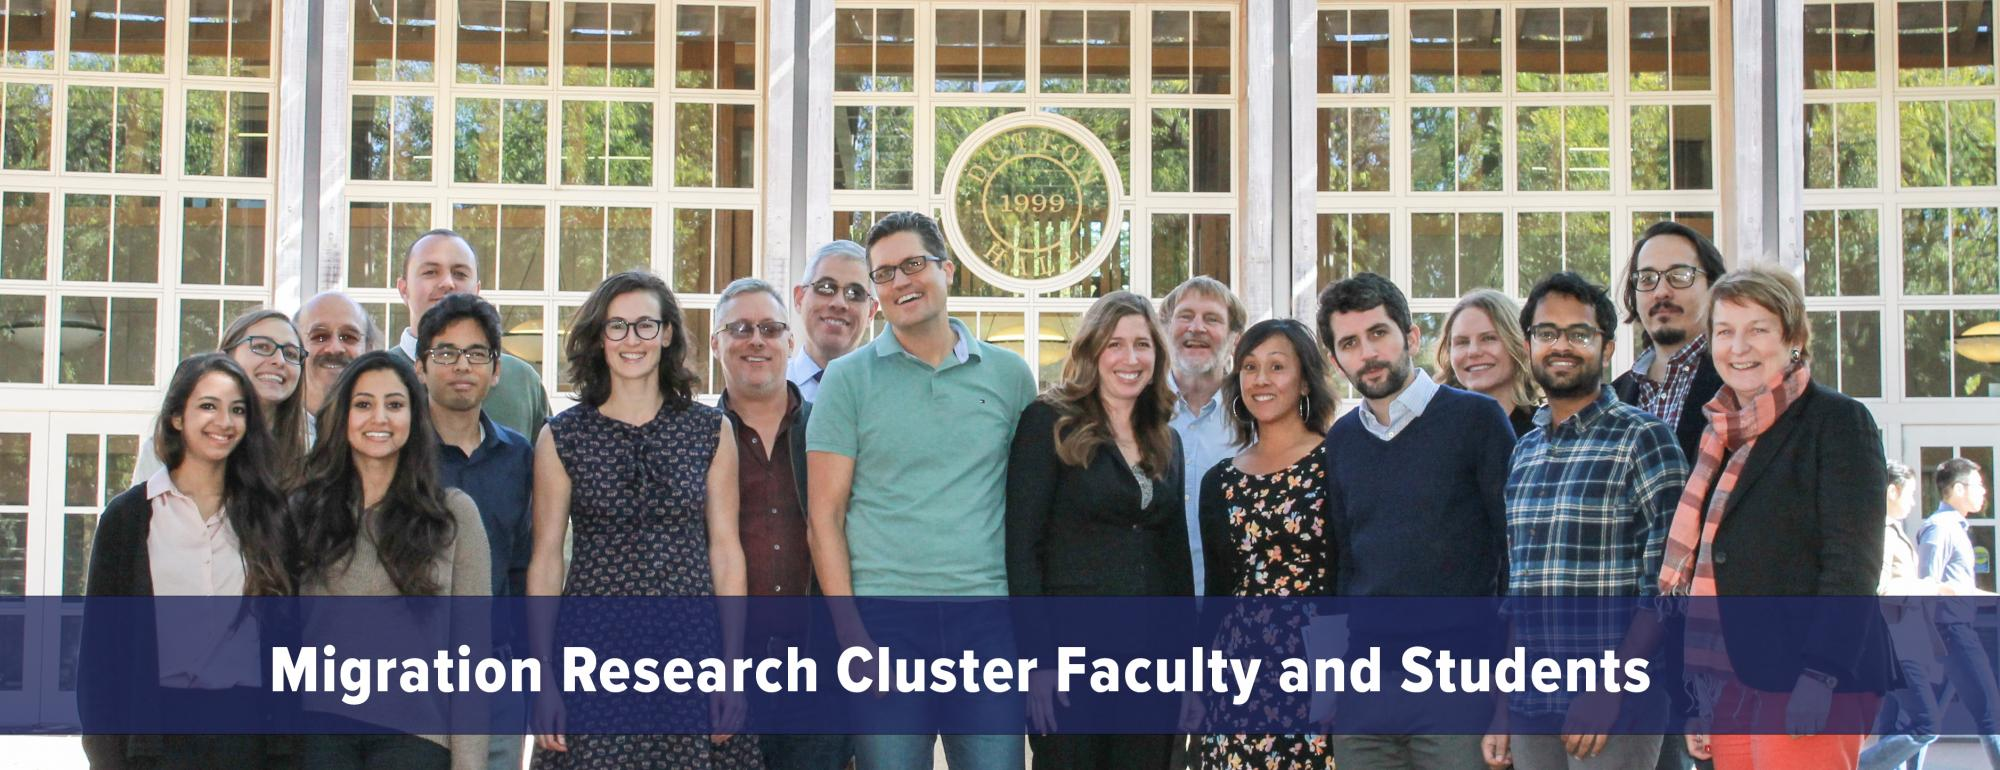 Migration Research Cluster Faculty and Students